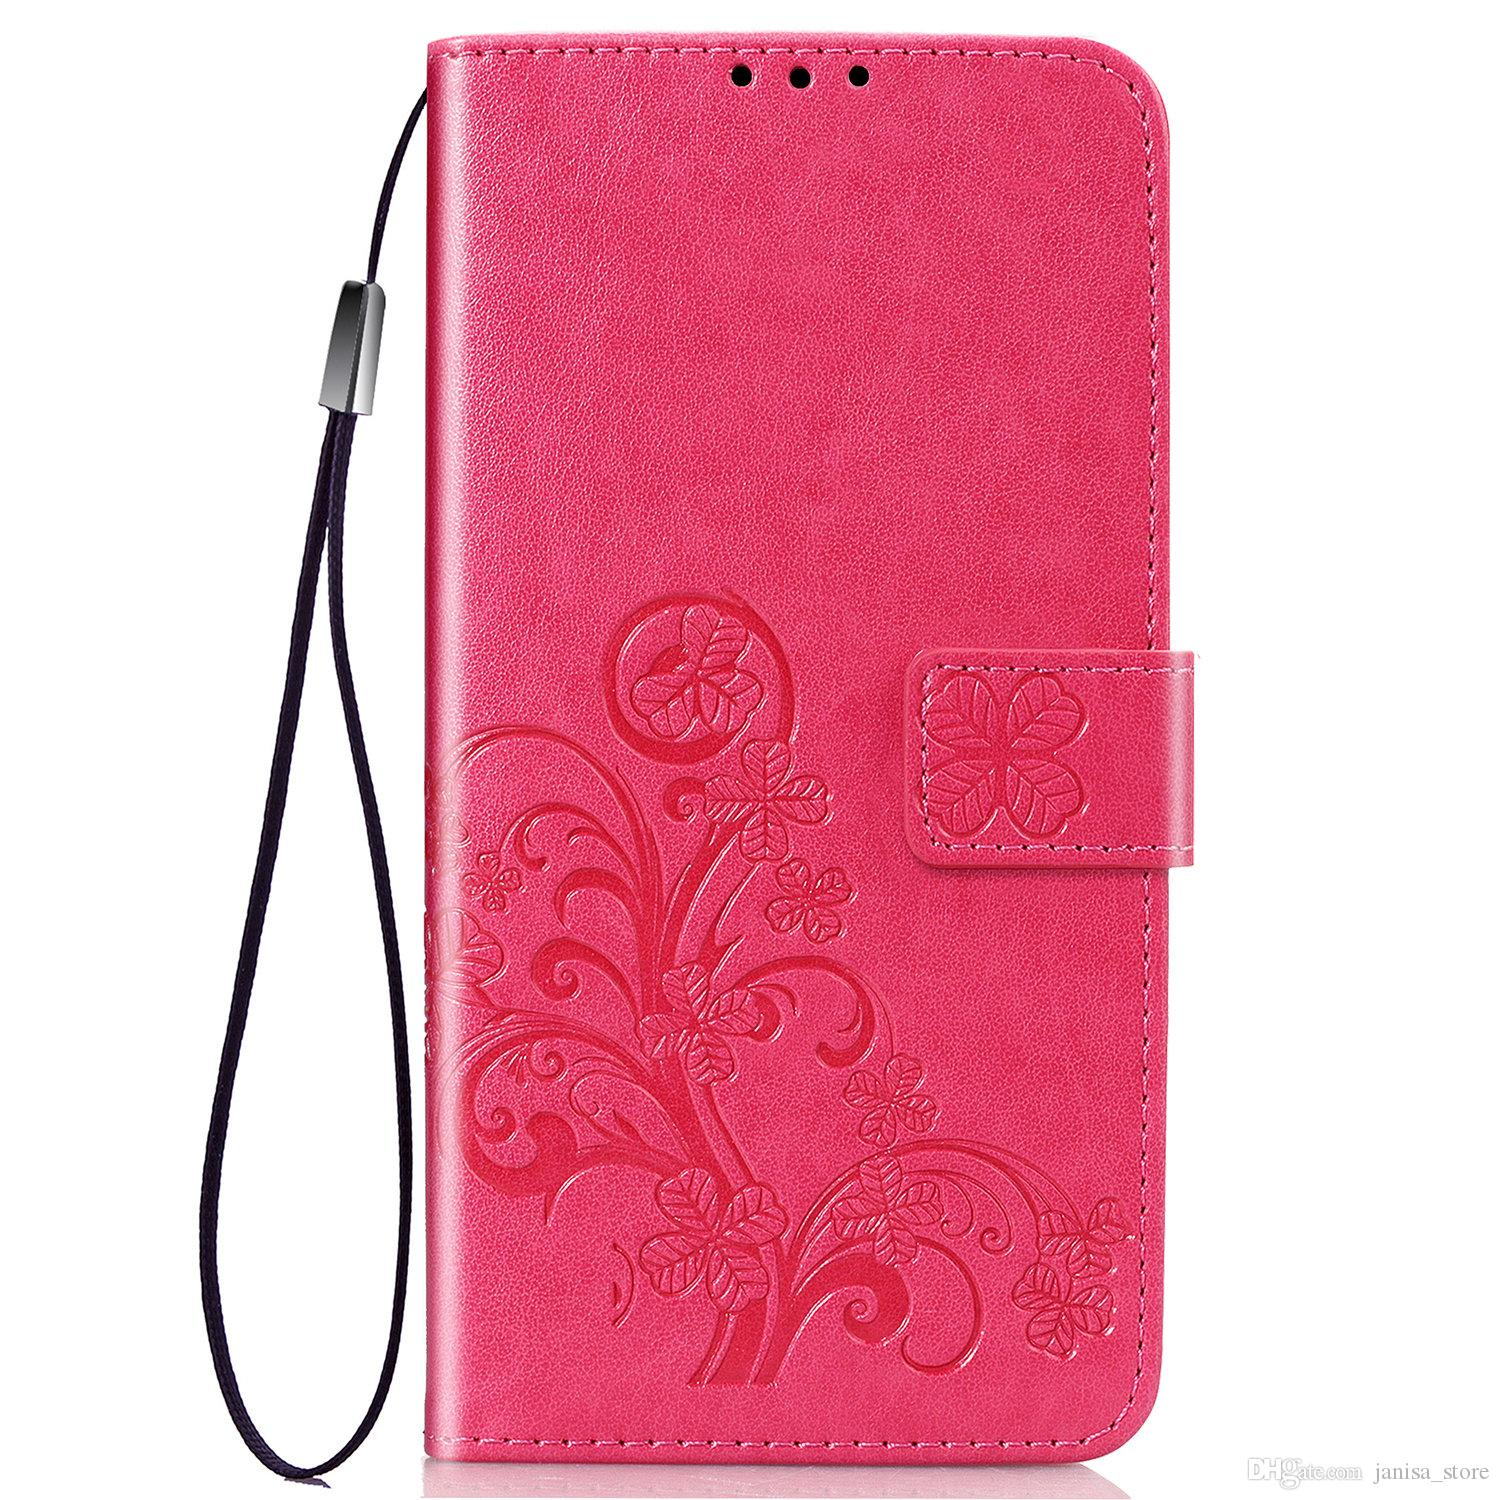 2019 high quality anti-fall anti-collision soft thin lucky four-leaf clover multi-function PU leather phone case for one plus one plus 7